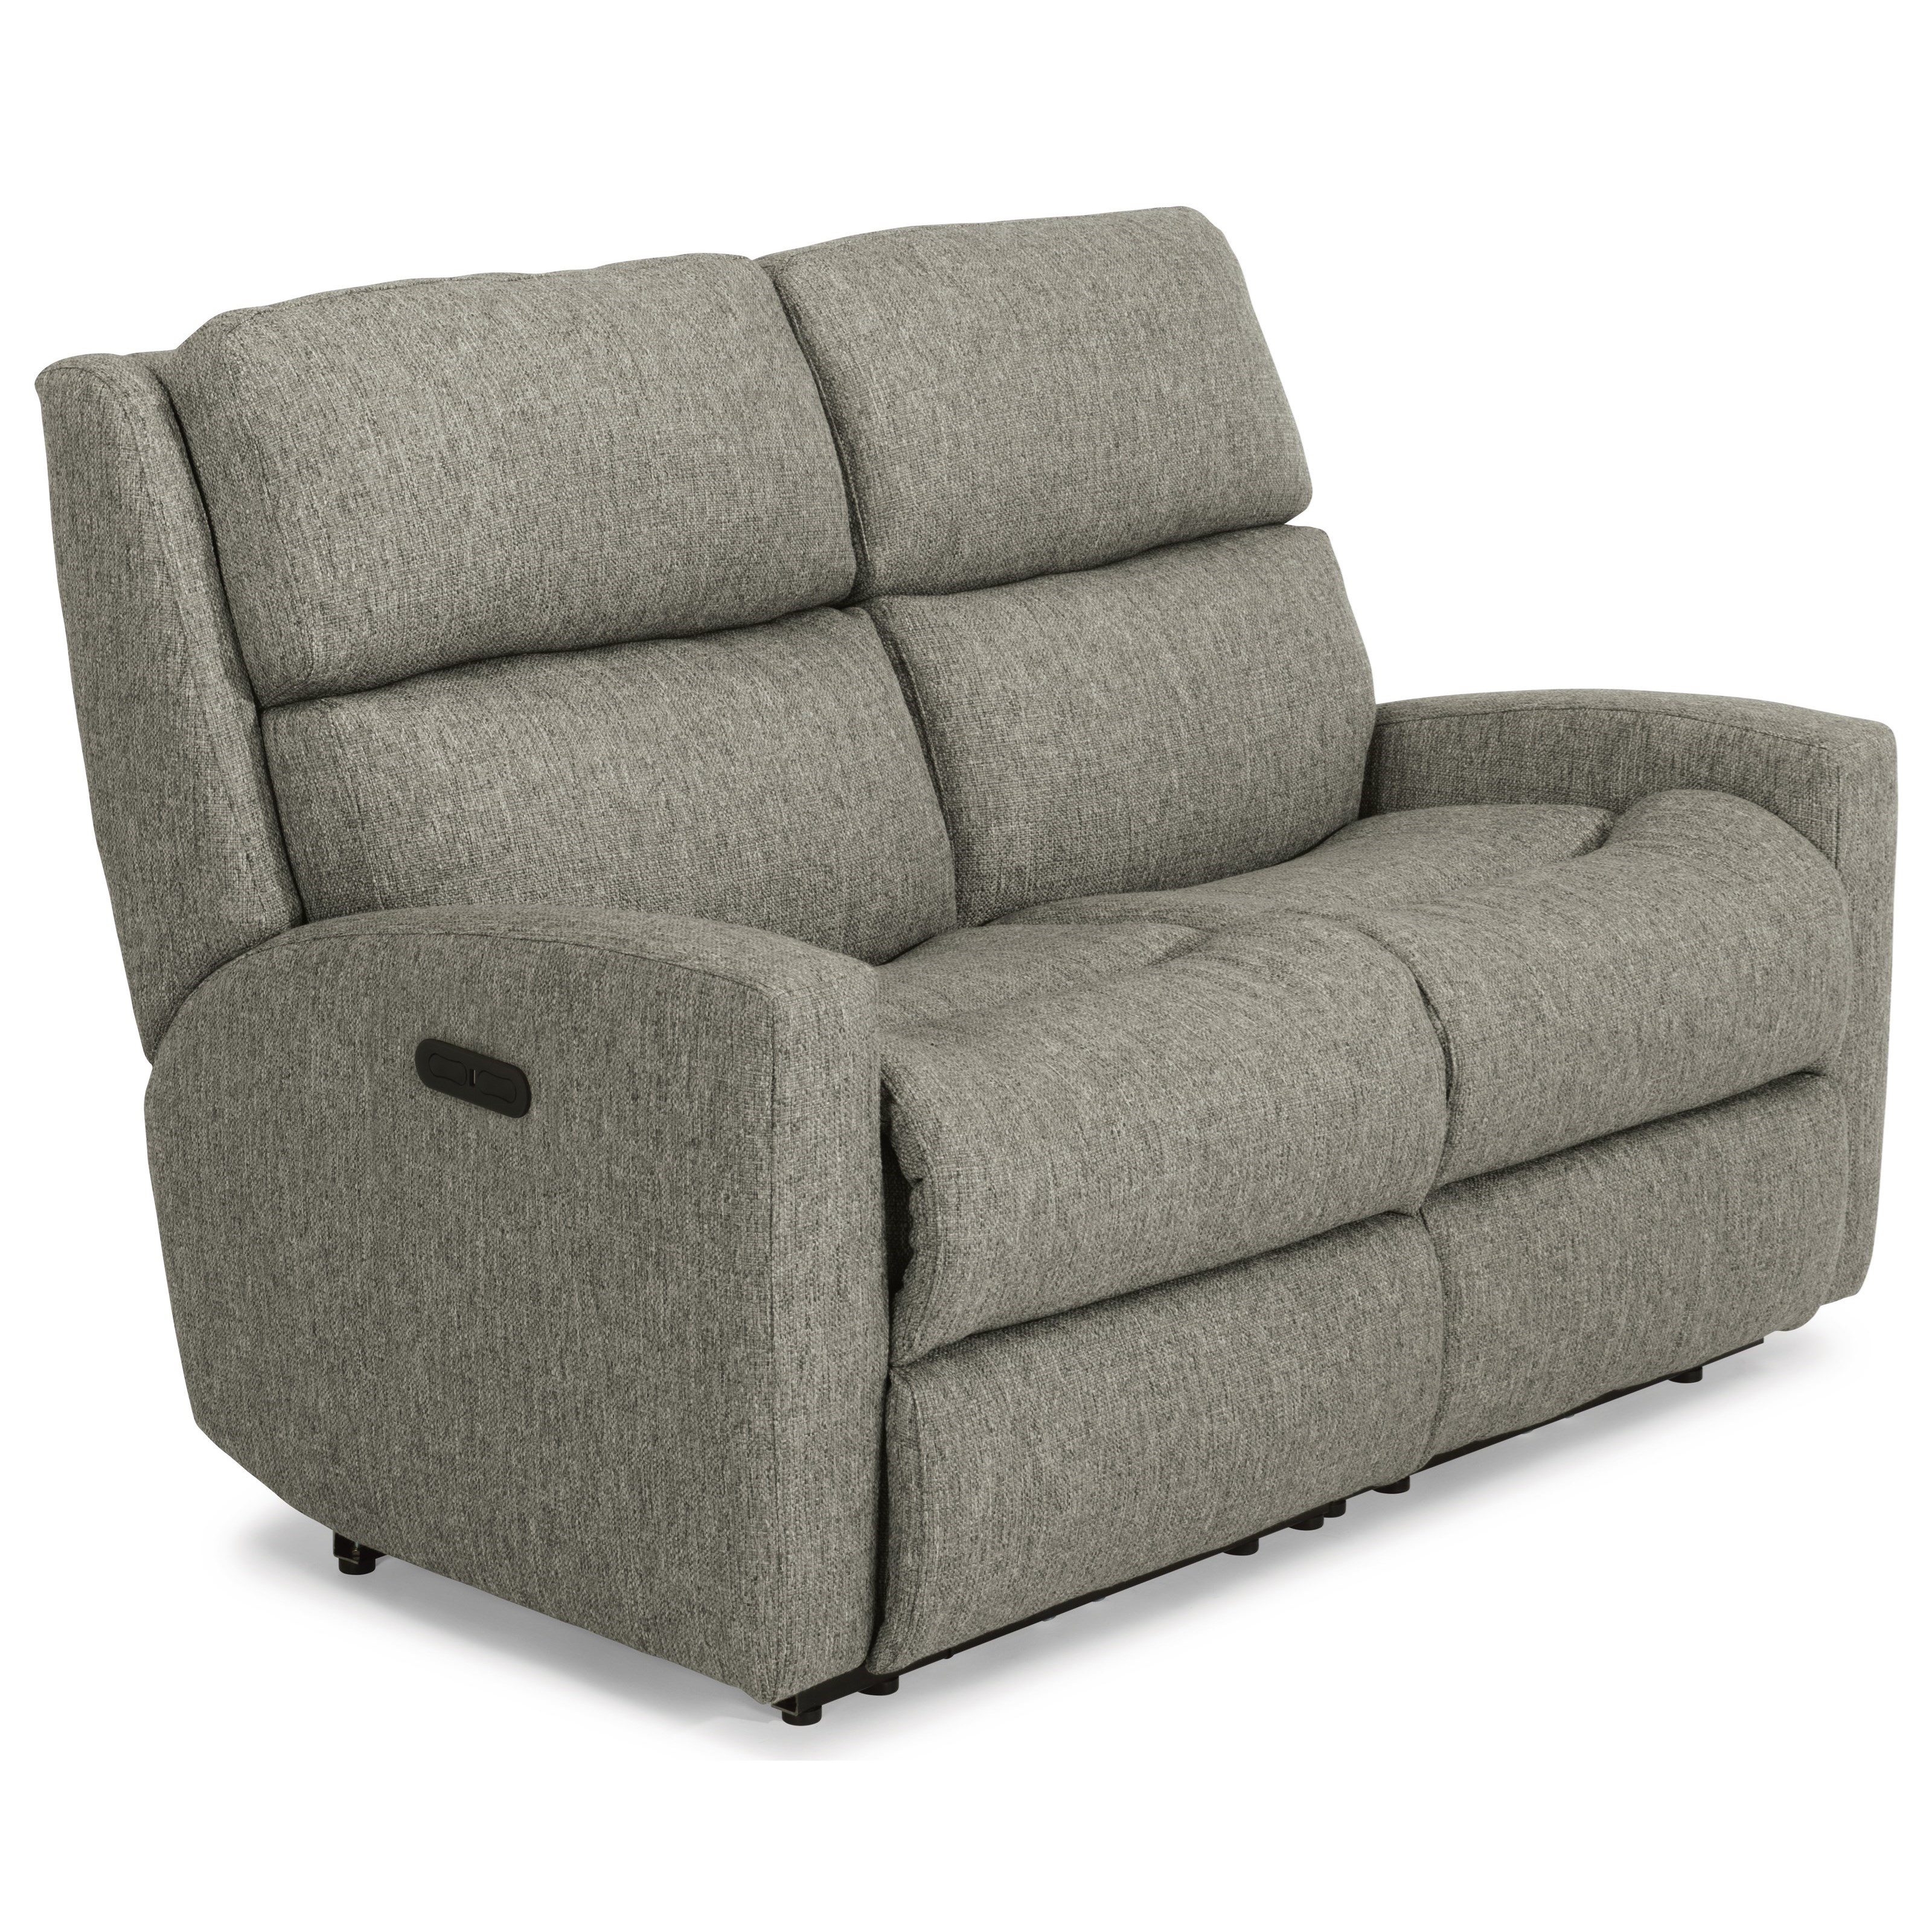 Catalina Power Reclining Loveseat w/ Pwr Headrests by Flexsteel at Jordan's Home Furnishings